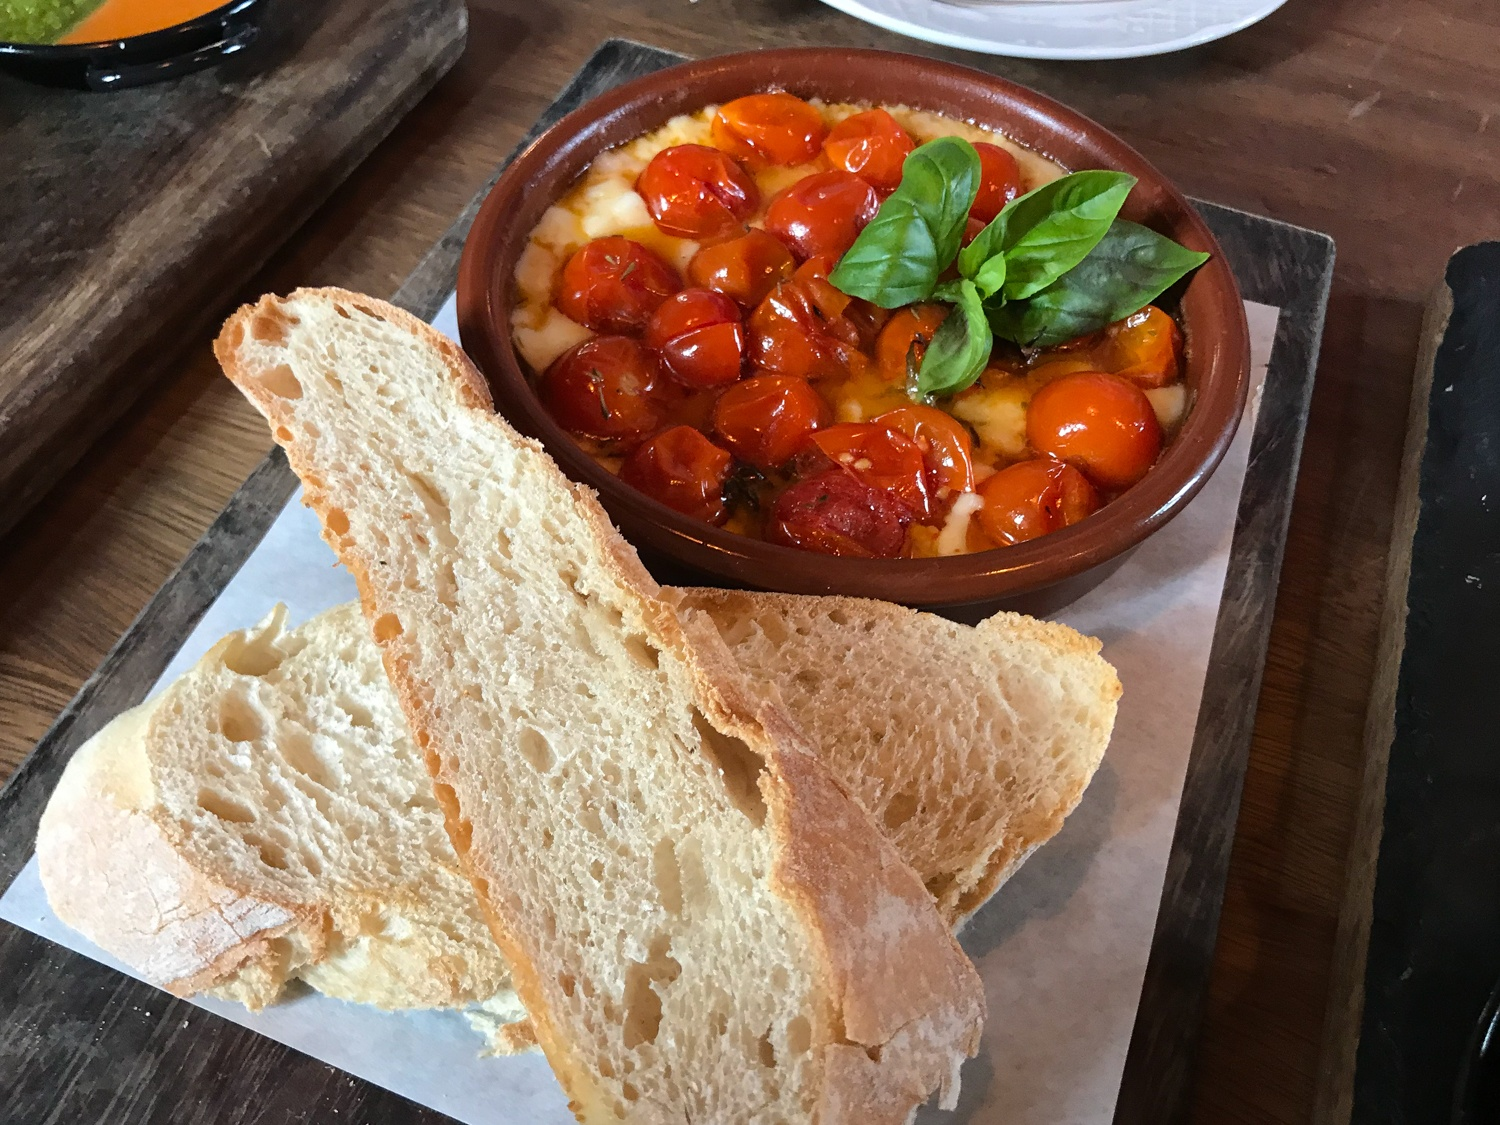 Cherry tomatoes and goats cheese at Cantina Teguise Photo Heatheronhertravels.com